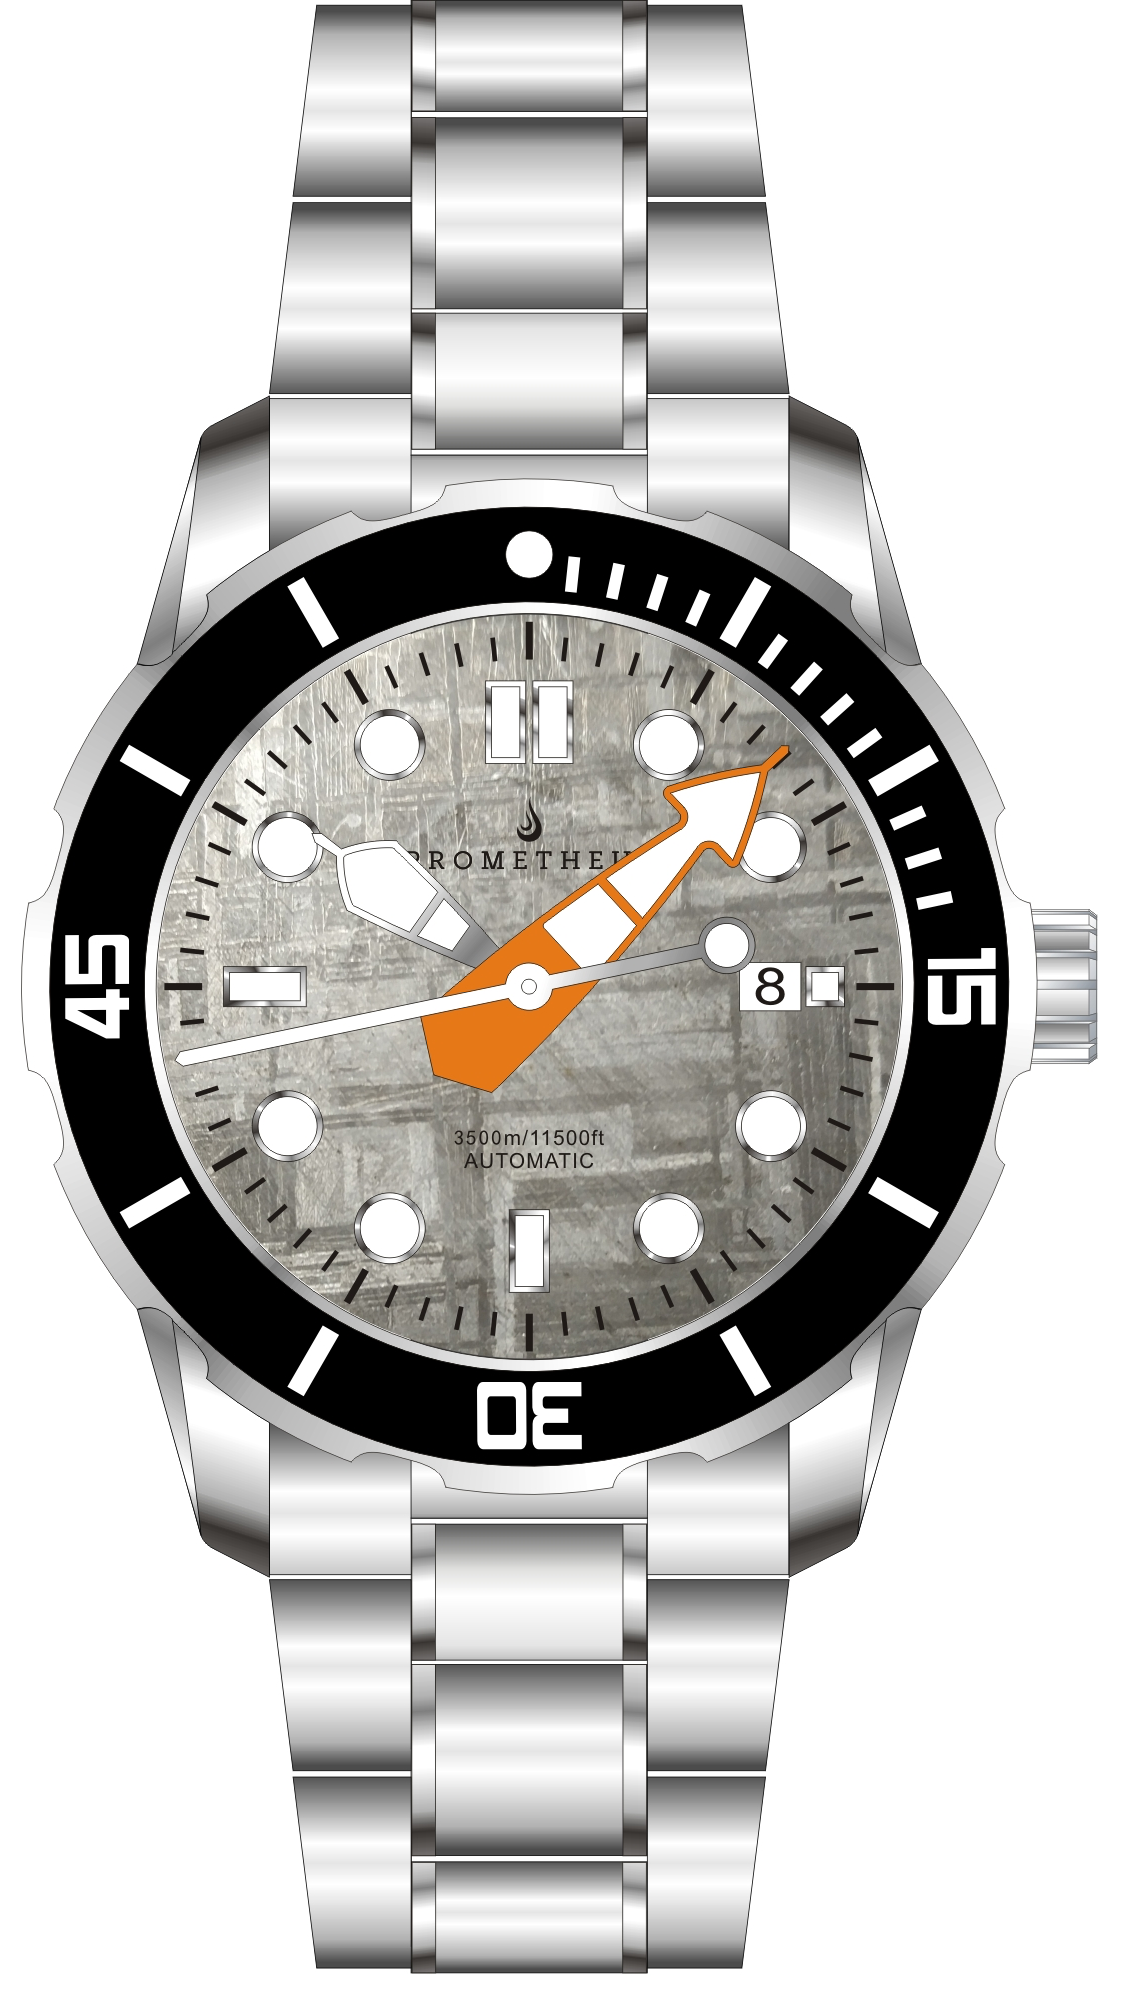 Pre-Order Prometheus Poseidon Meteorite Dial Modern Diver Hands Orange Date 3500m Diver Watch Automatic Miyota 9015